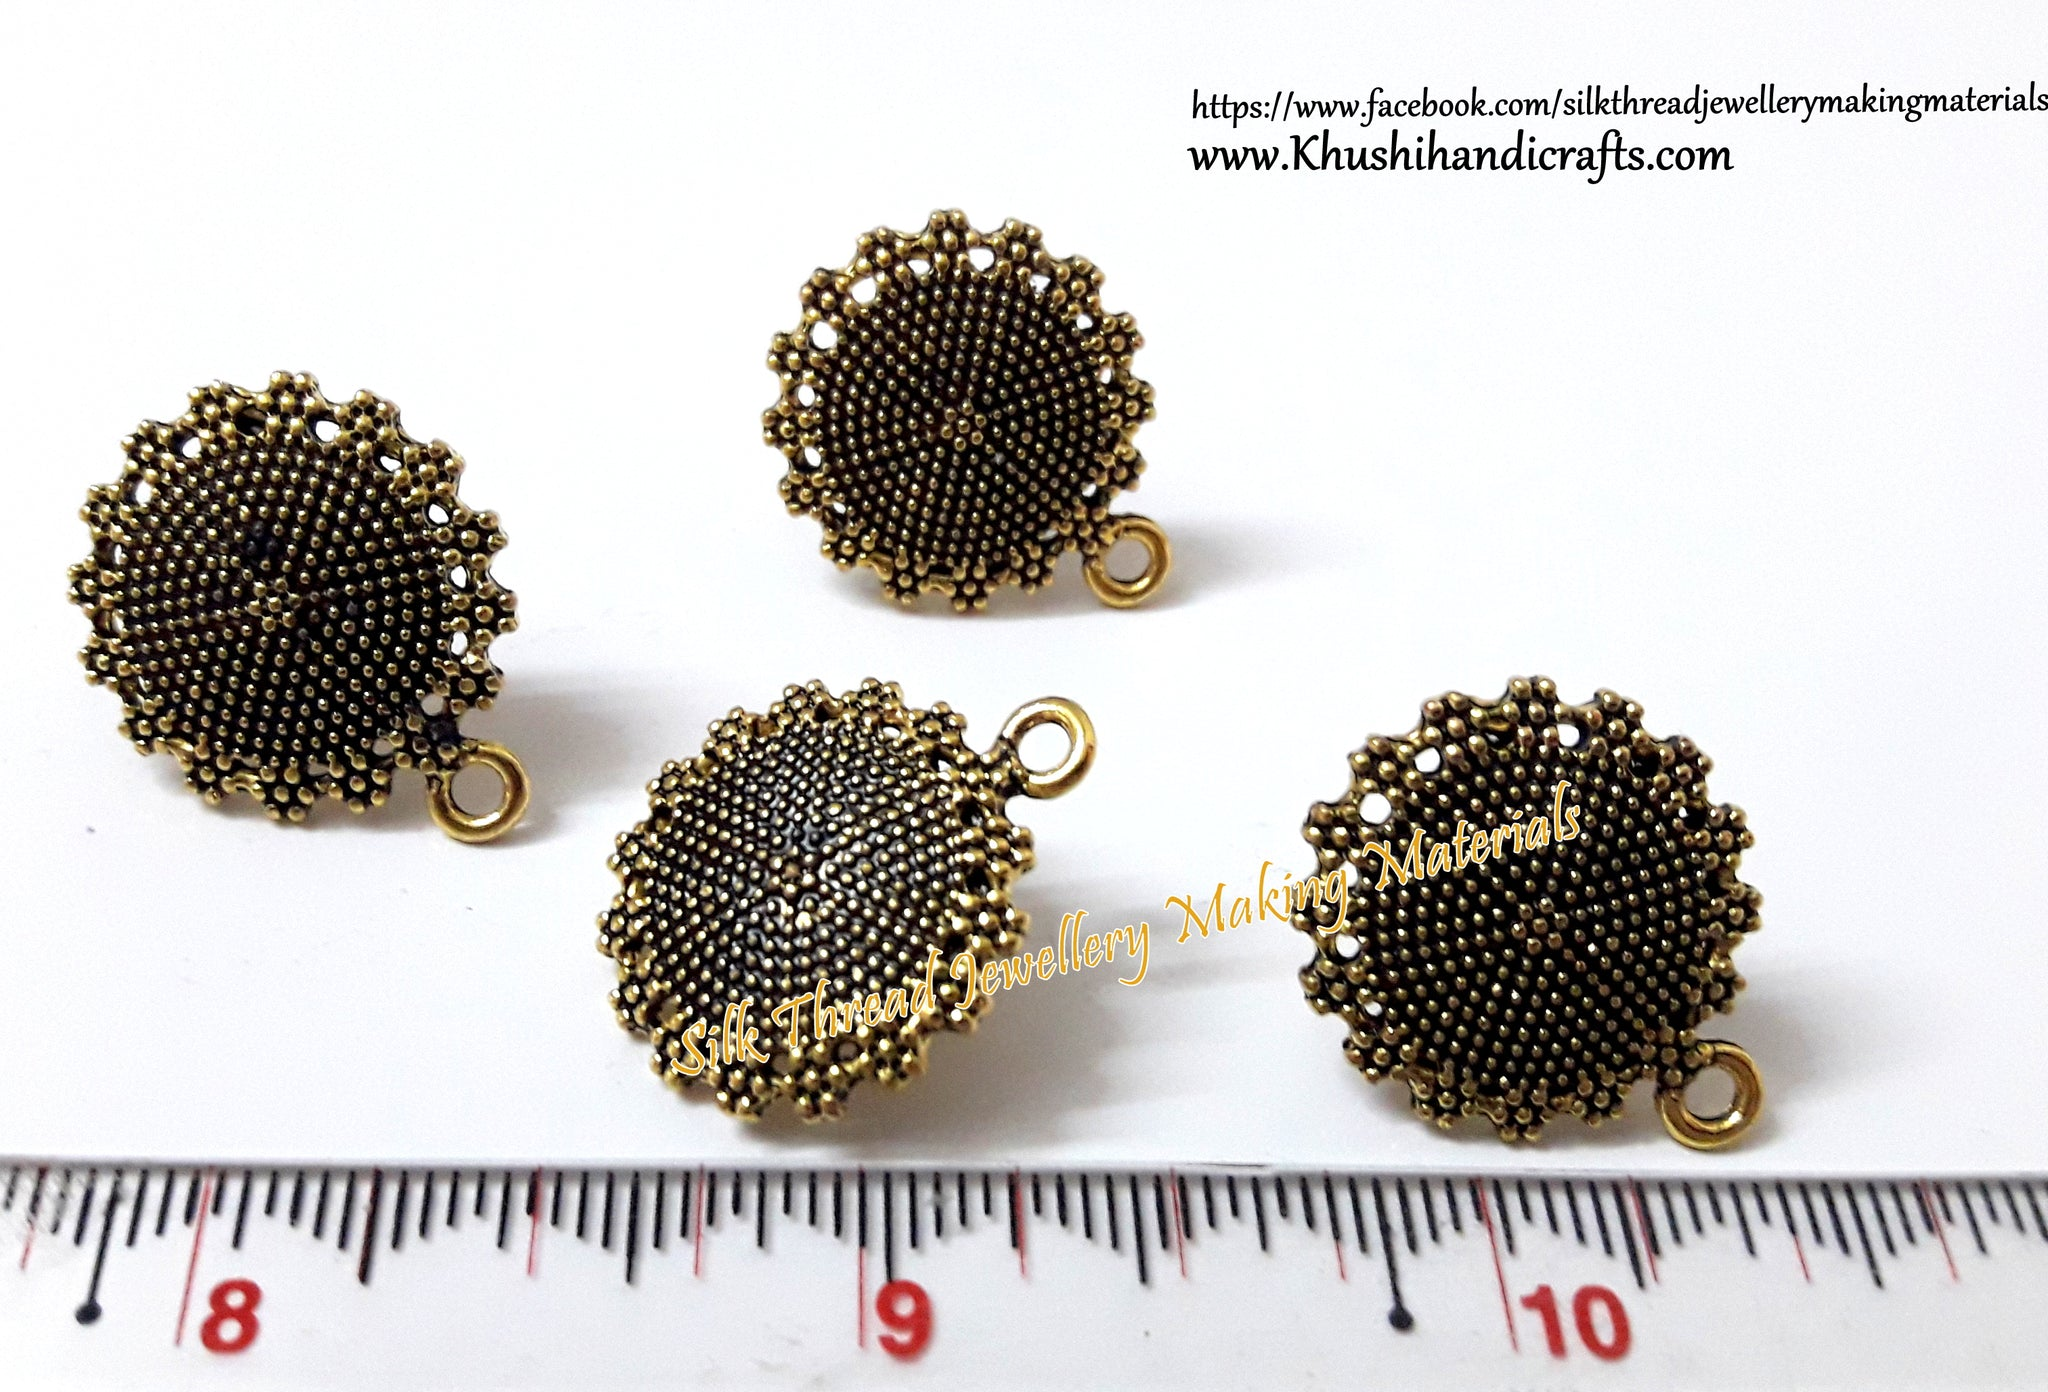 Antique studs for Jewelry Making